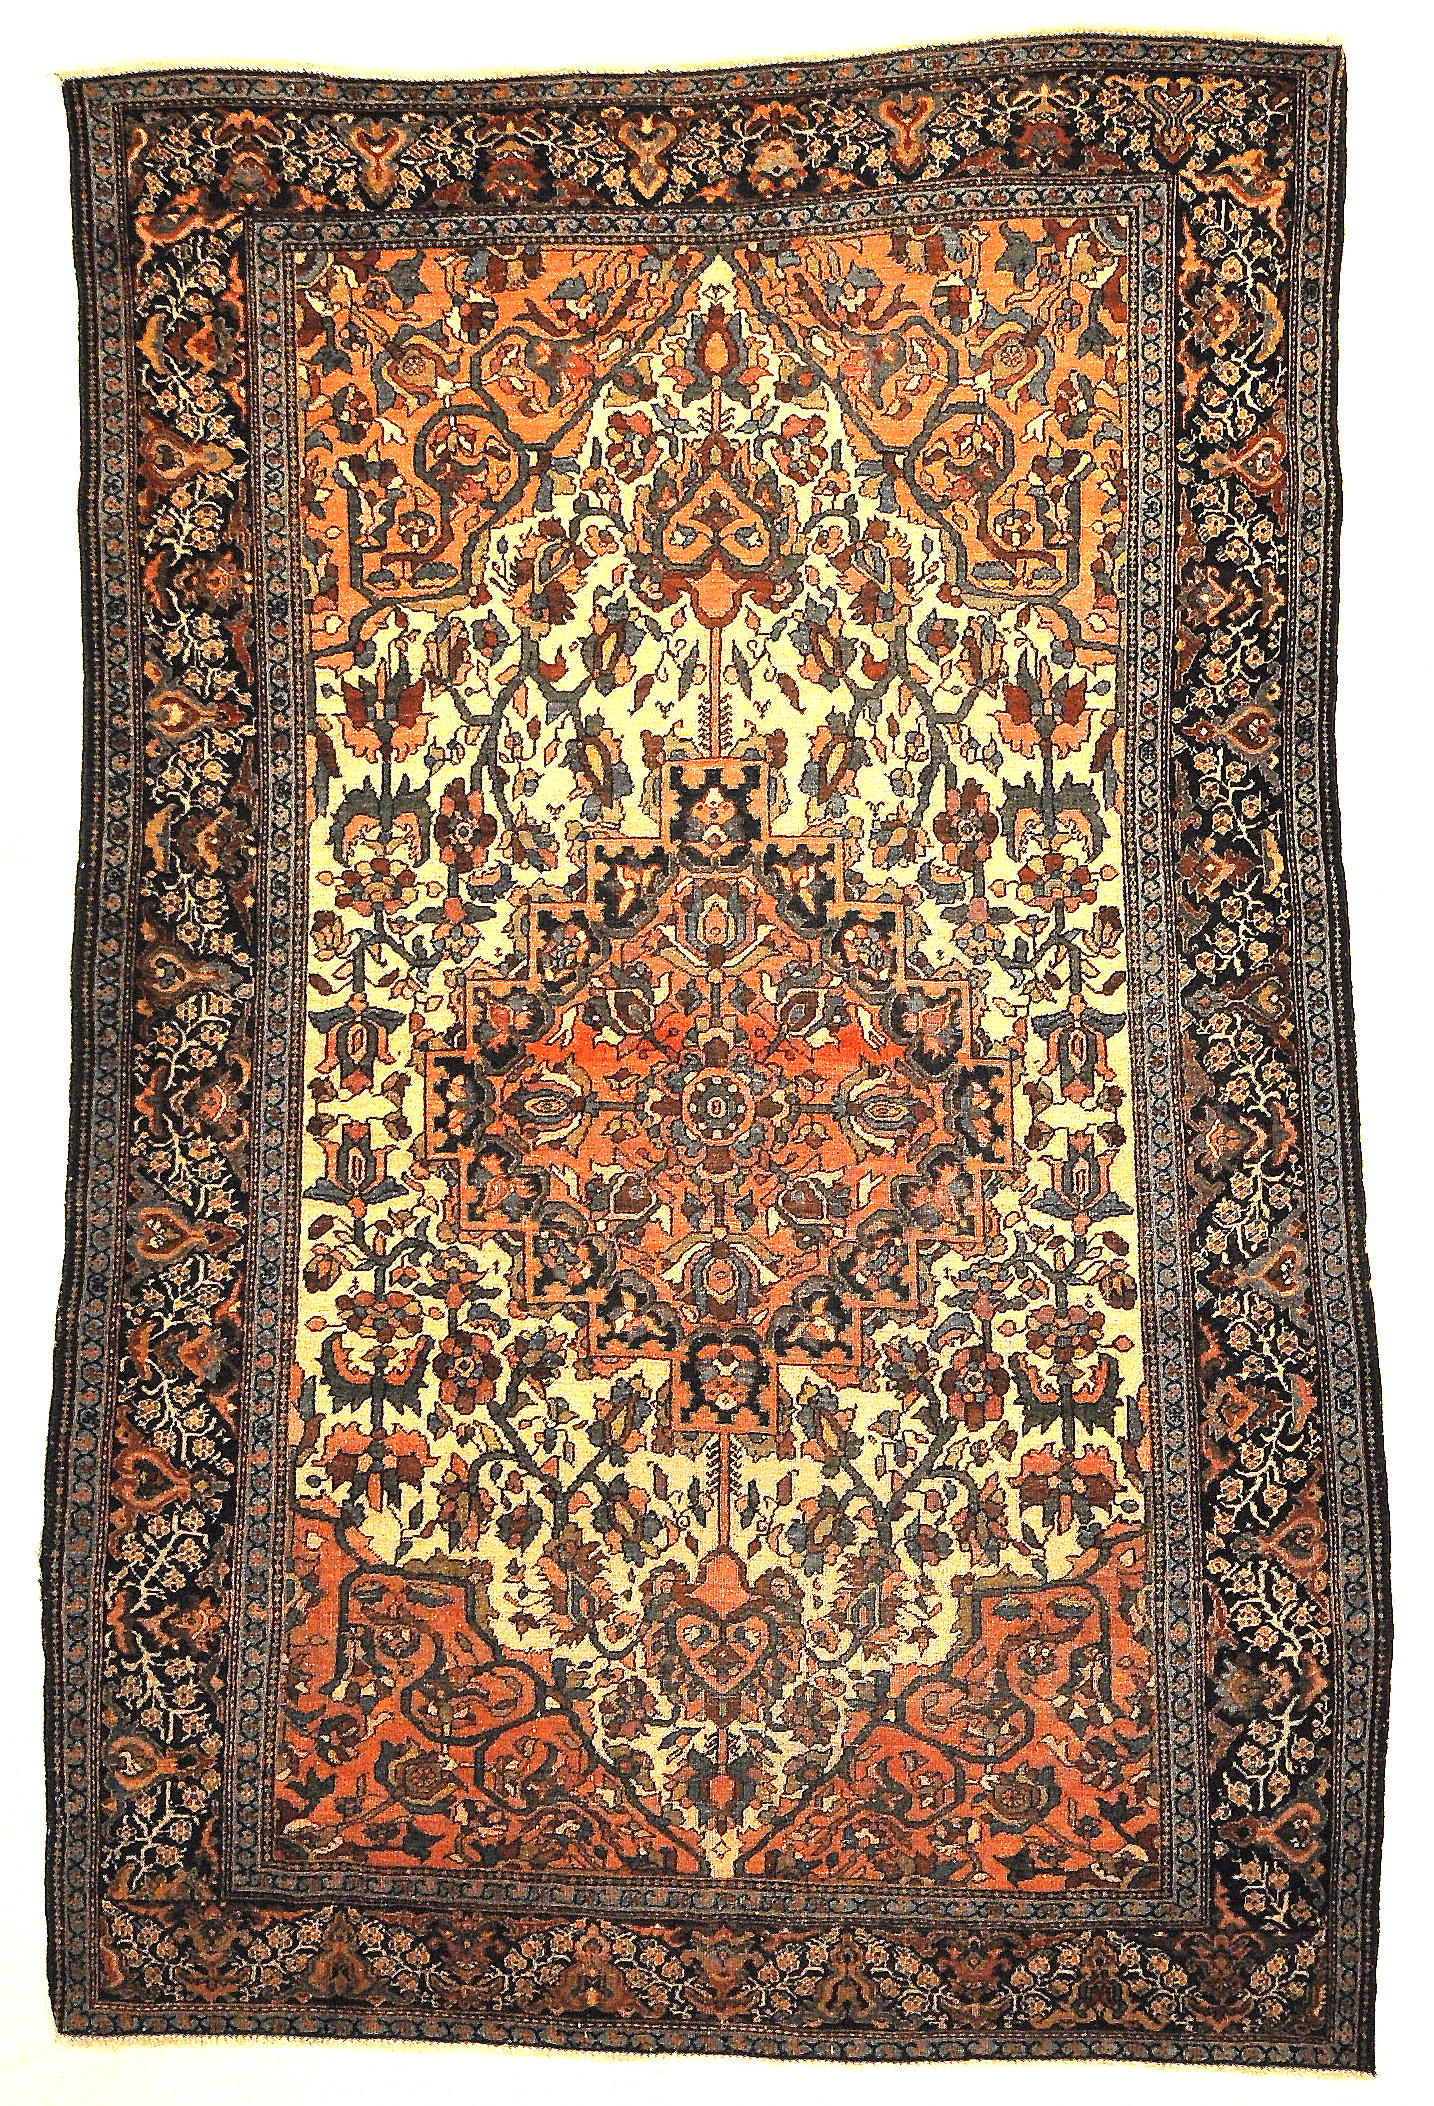 Antique 19th Century Village Persian Farahan Genuine Woven Carpet Art Authentic Intricate